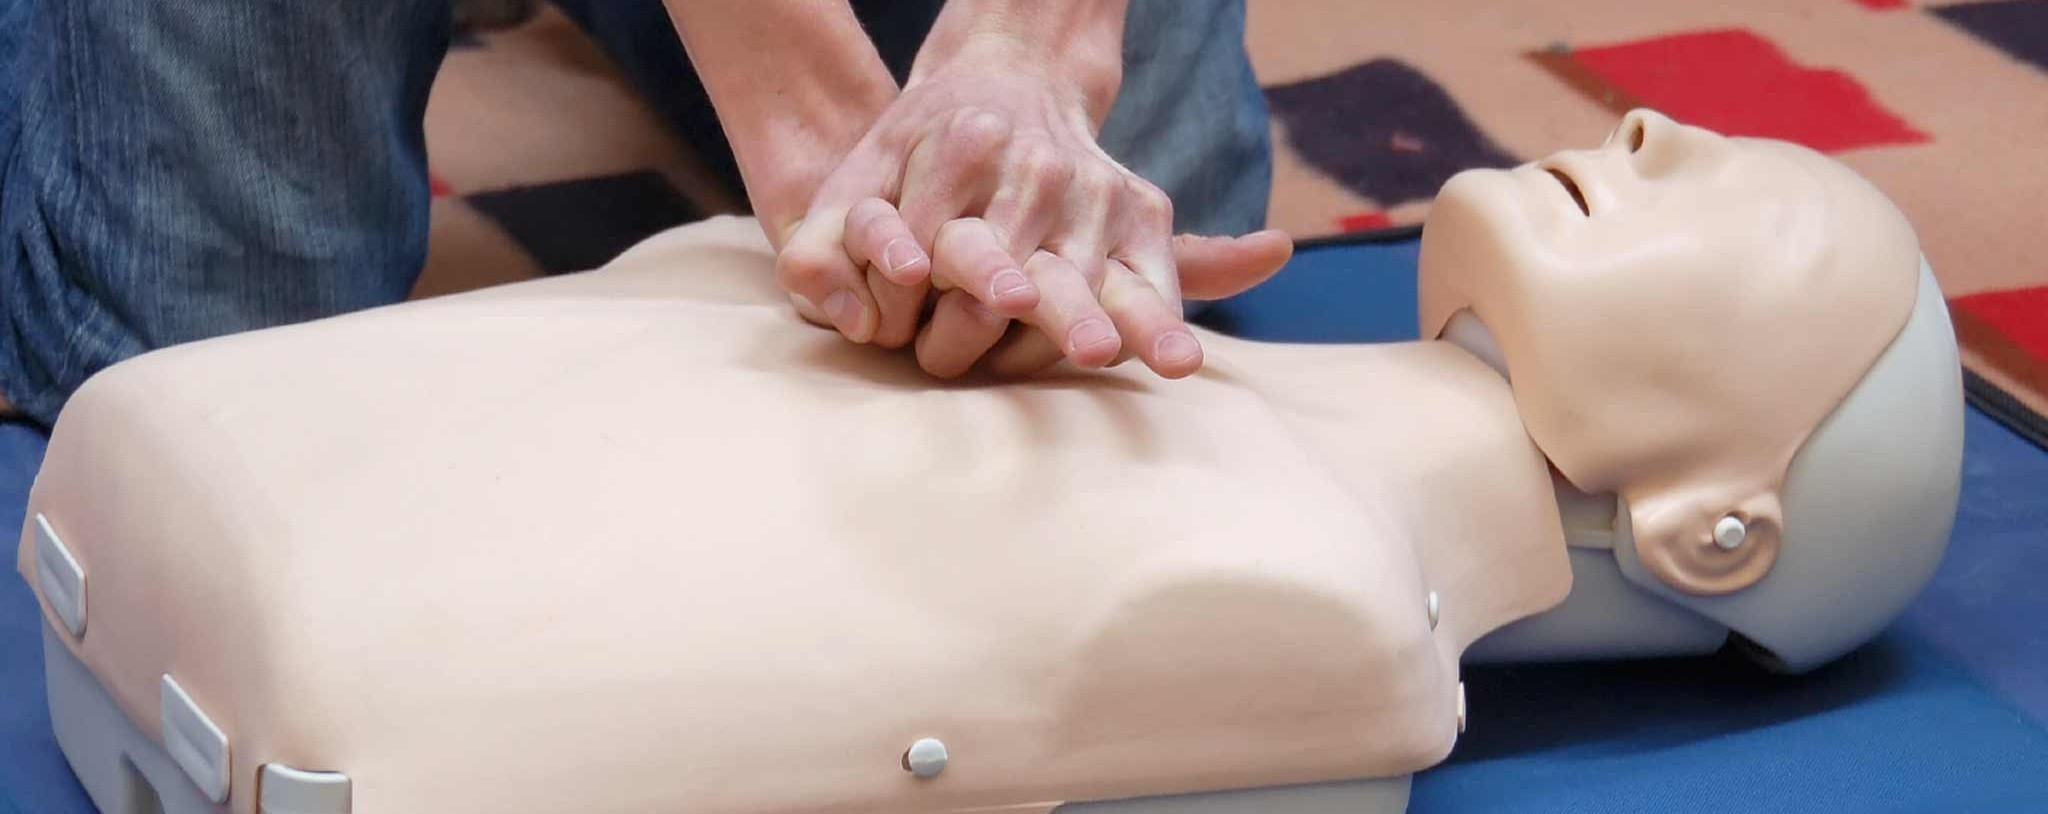 CPR - First Aid Courses in and around High Wycombe